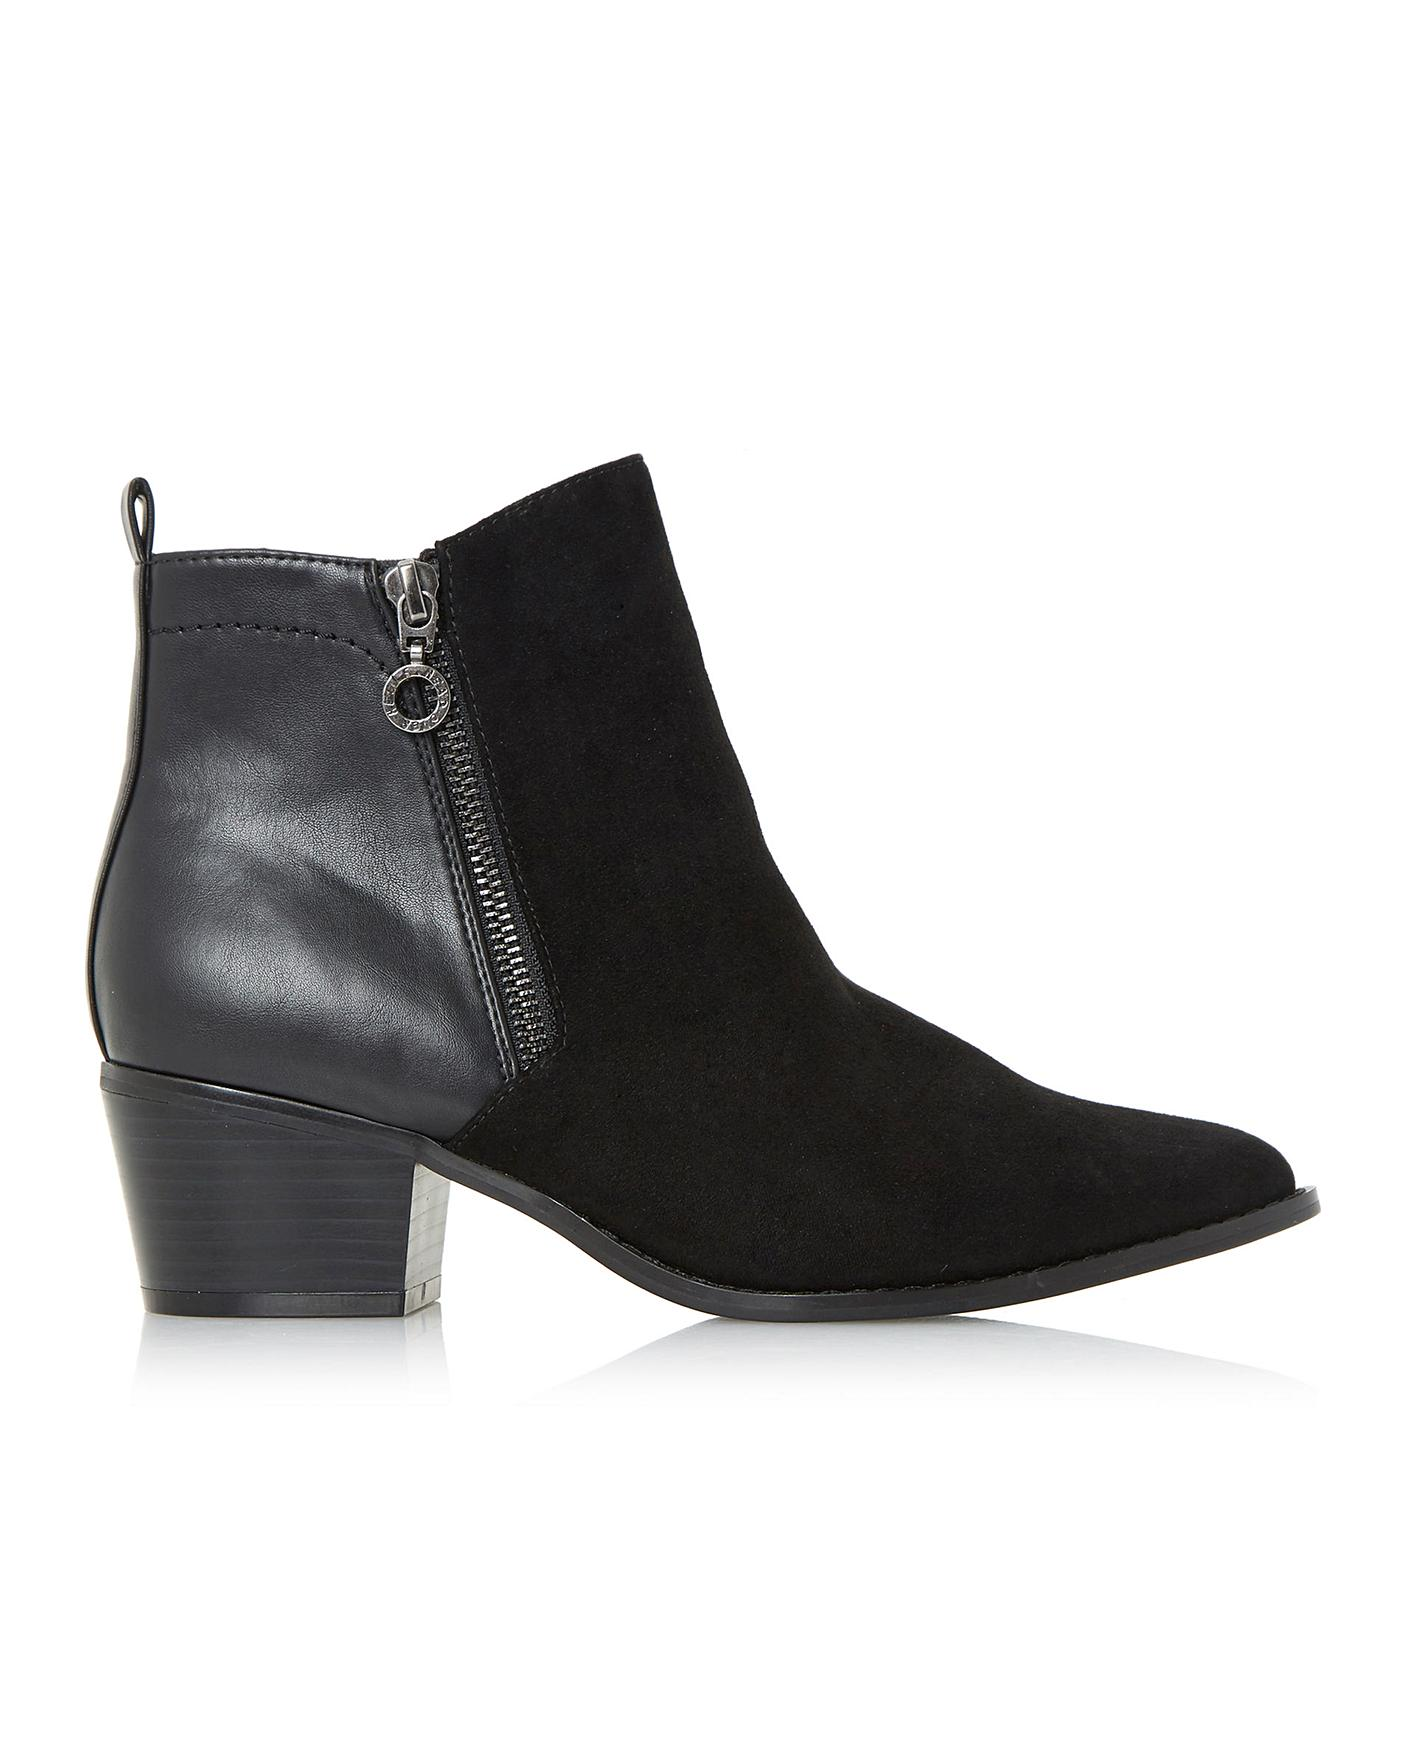 03737a75abb2 Head Over Heels by Dune Pilar Boot D Fit | Simply Be